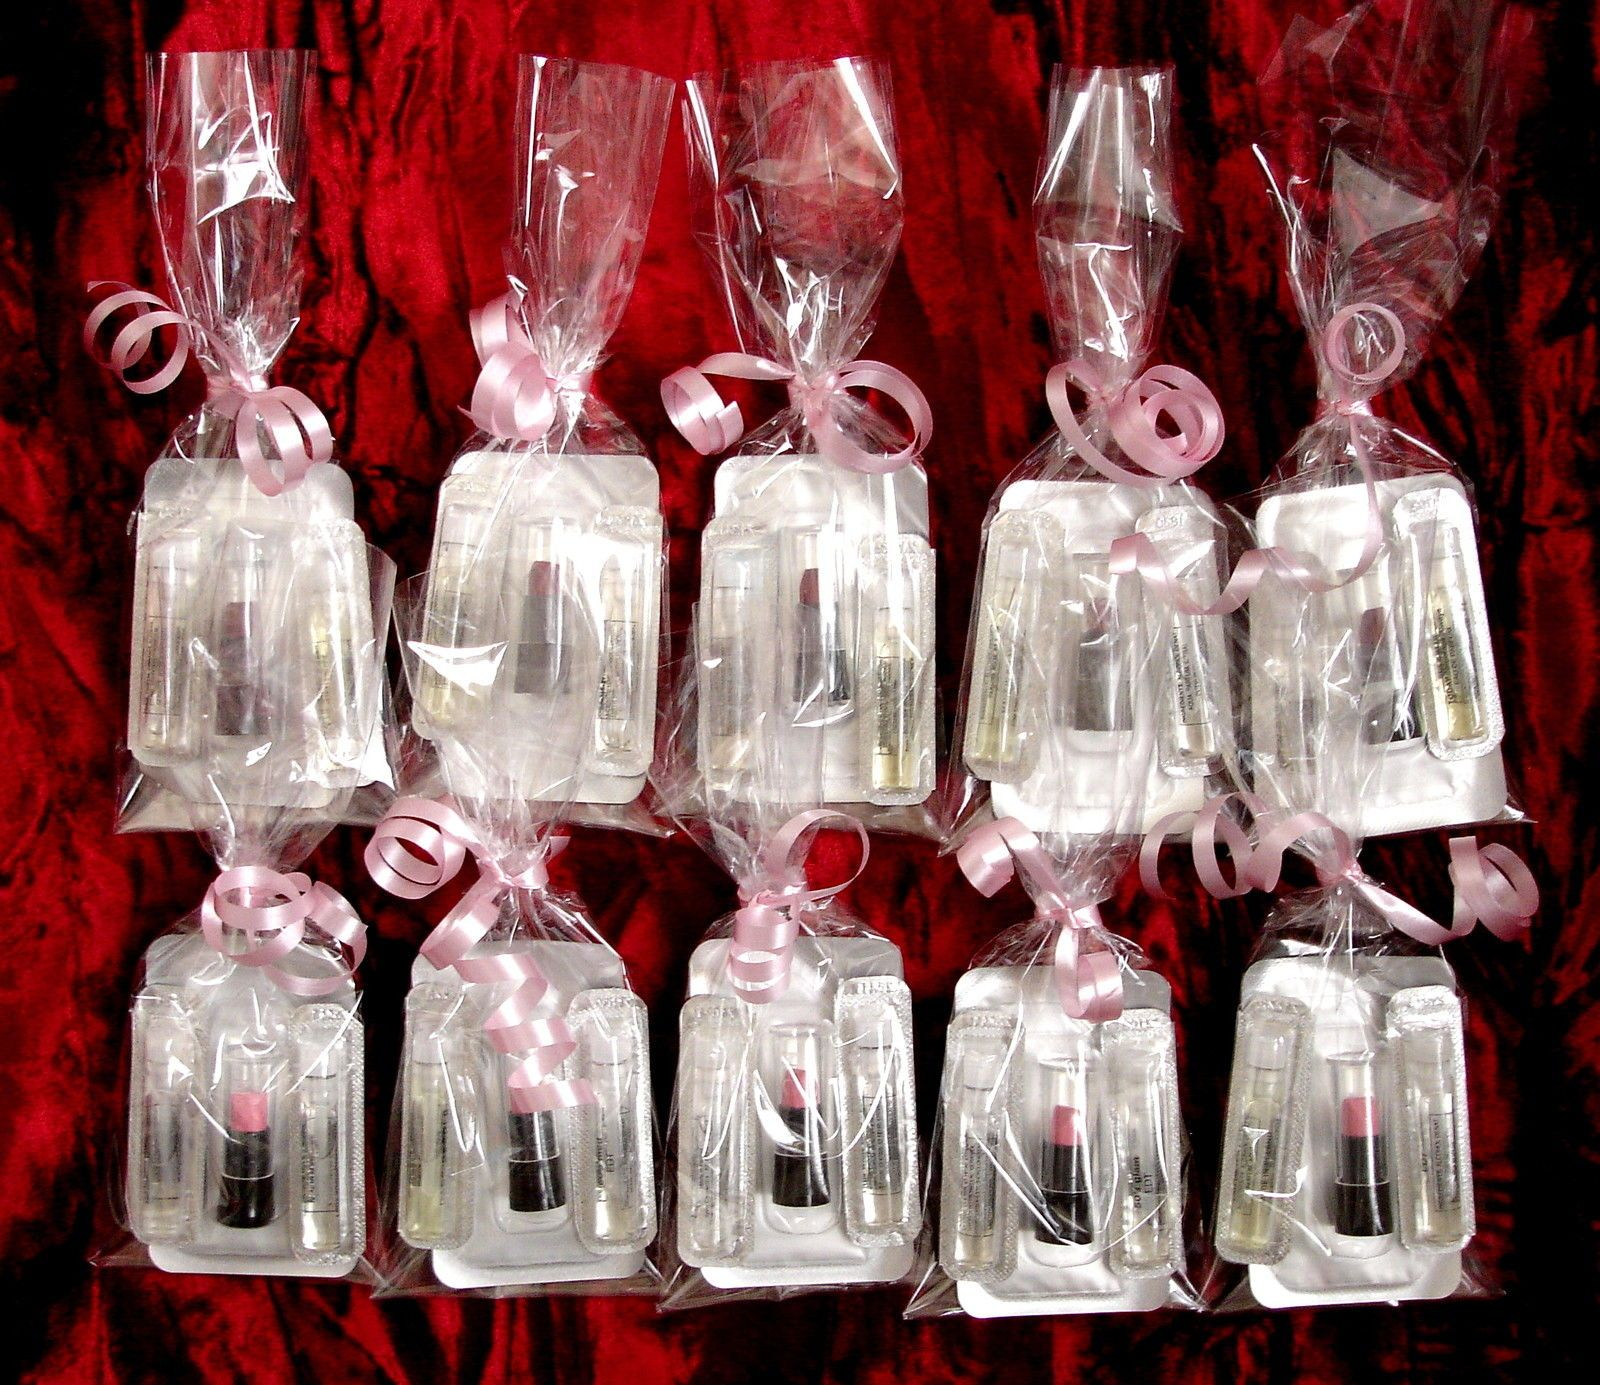 10 Avon Party Favors Gift Goodie Bags Womens Teenagers Cosmetic Samples Ebay Avon